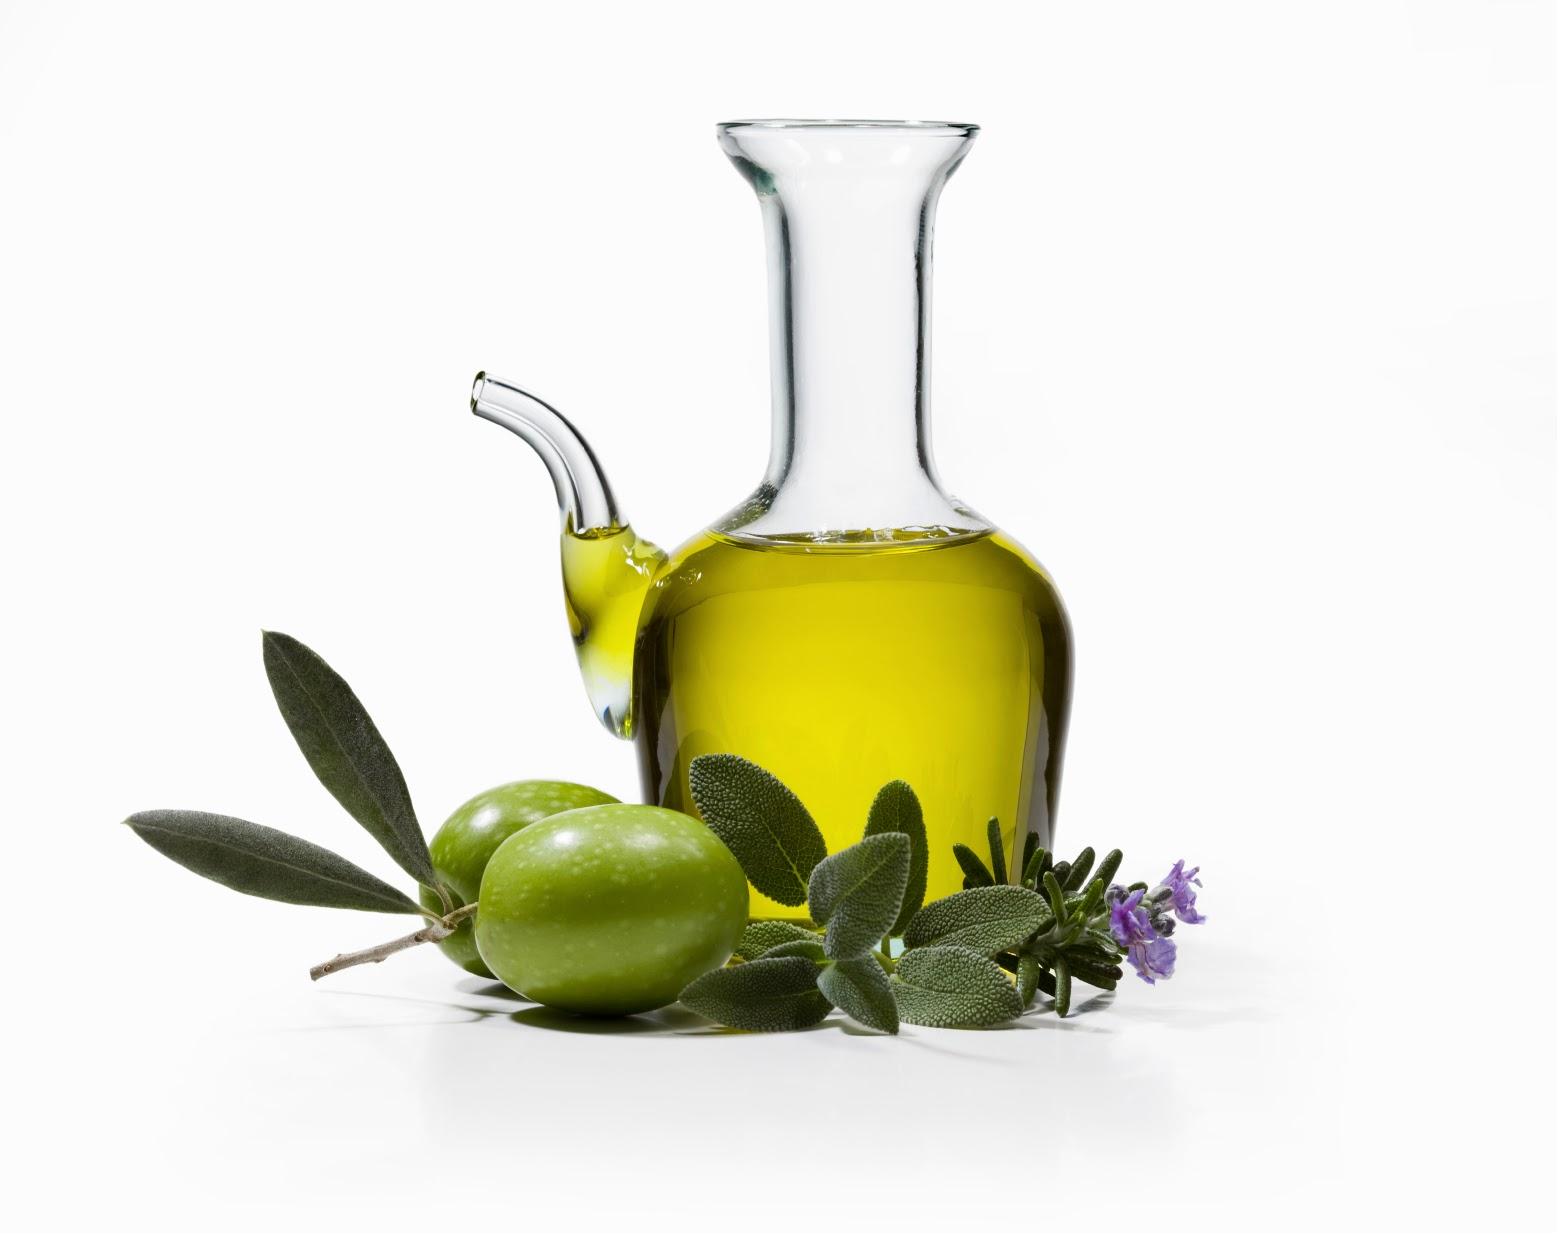 Kovai Recipies: Is Olive oil OK for Tamil cooking?